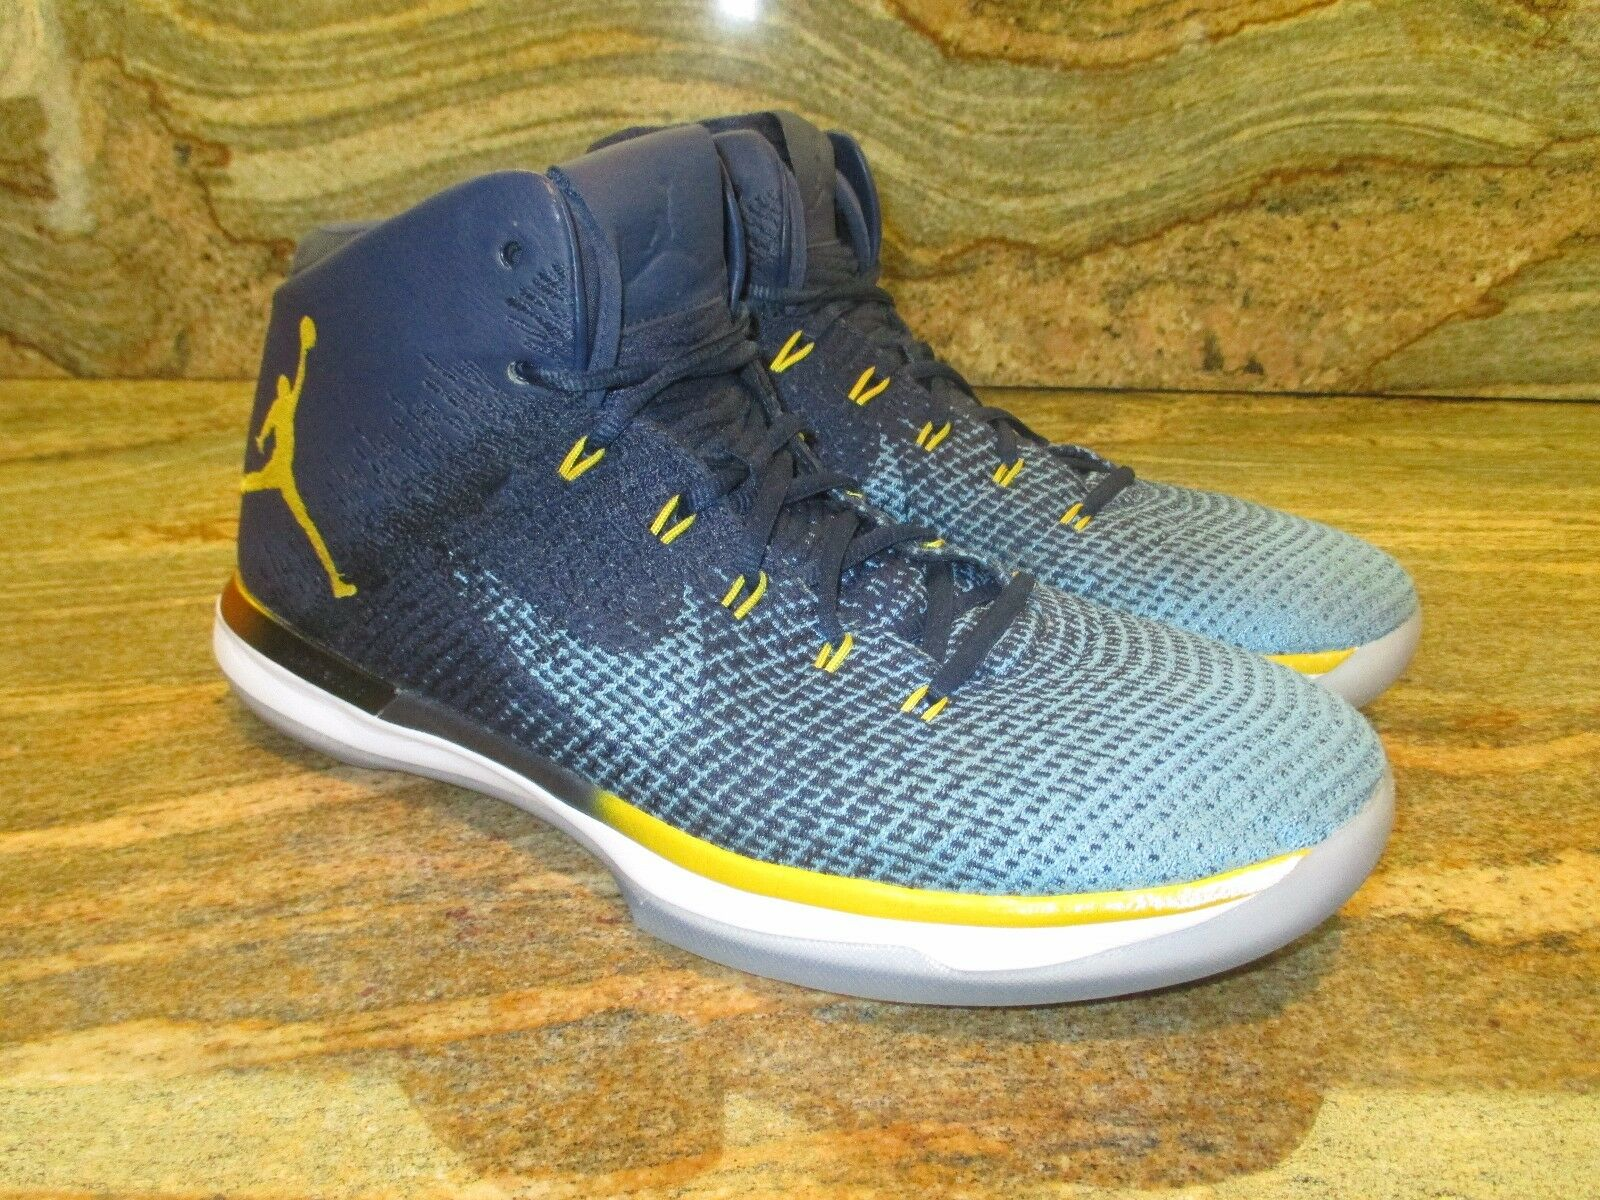 Unreleased Nike Sample Air Jordan XXX1 Promo Sample Nike SZ 14 Marquette PE Golden Eagles OG 29dace